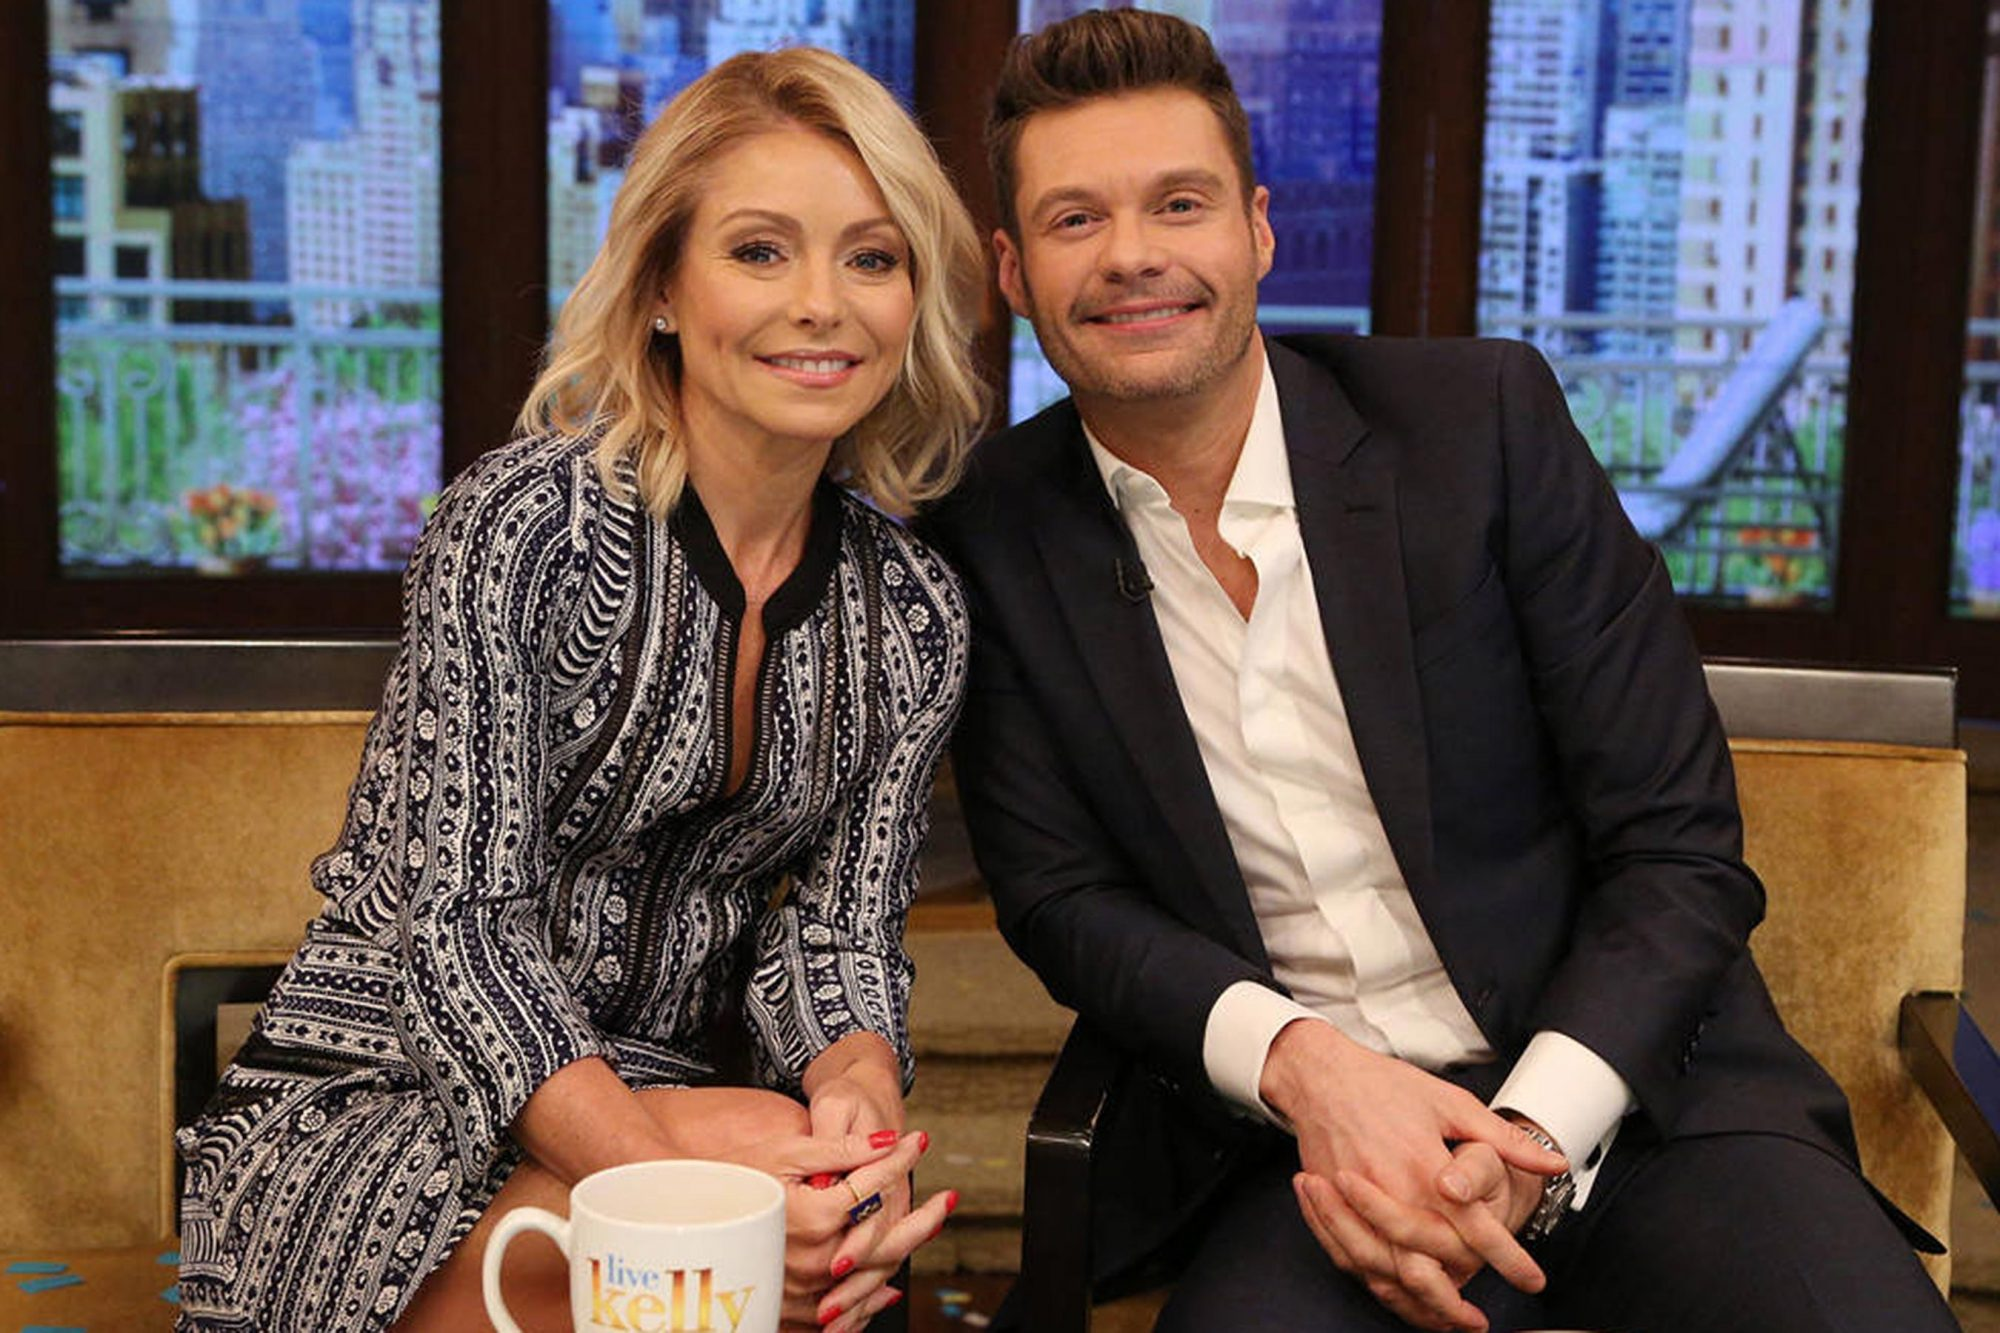 livewithkelly